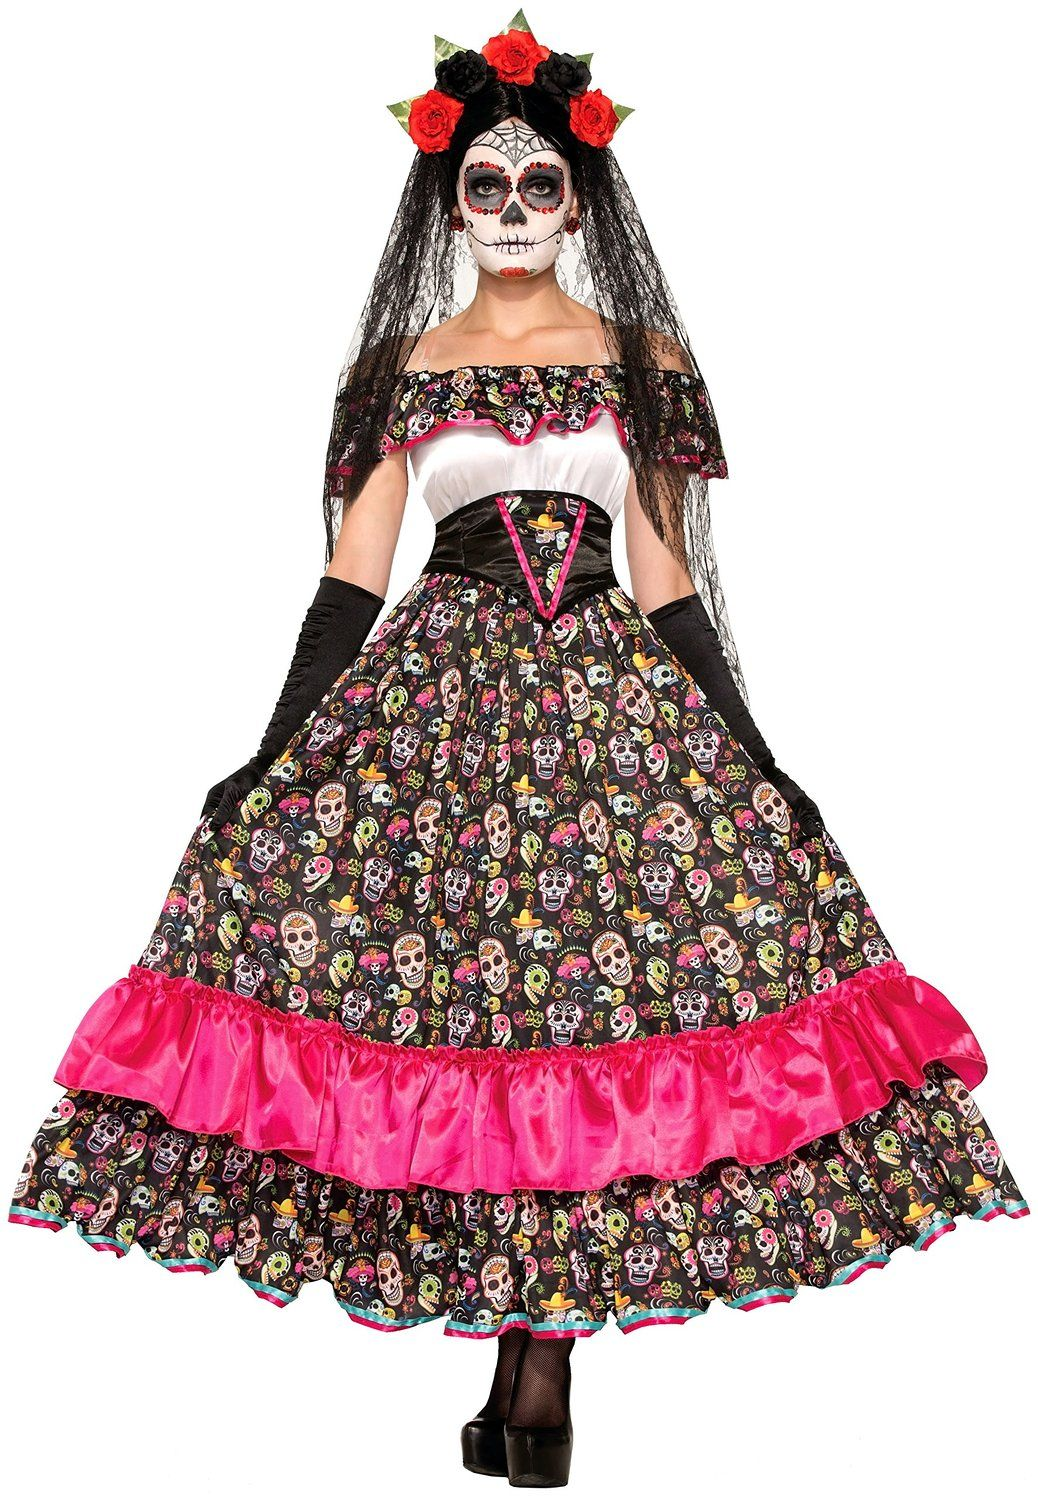 dia de los muertos costumes dia de costumes and halloween costumes. Black Bedroom Furniture Sets. Home Design Ideas